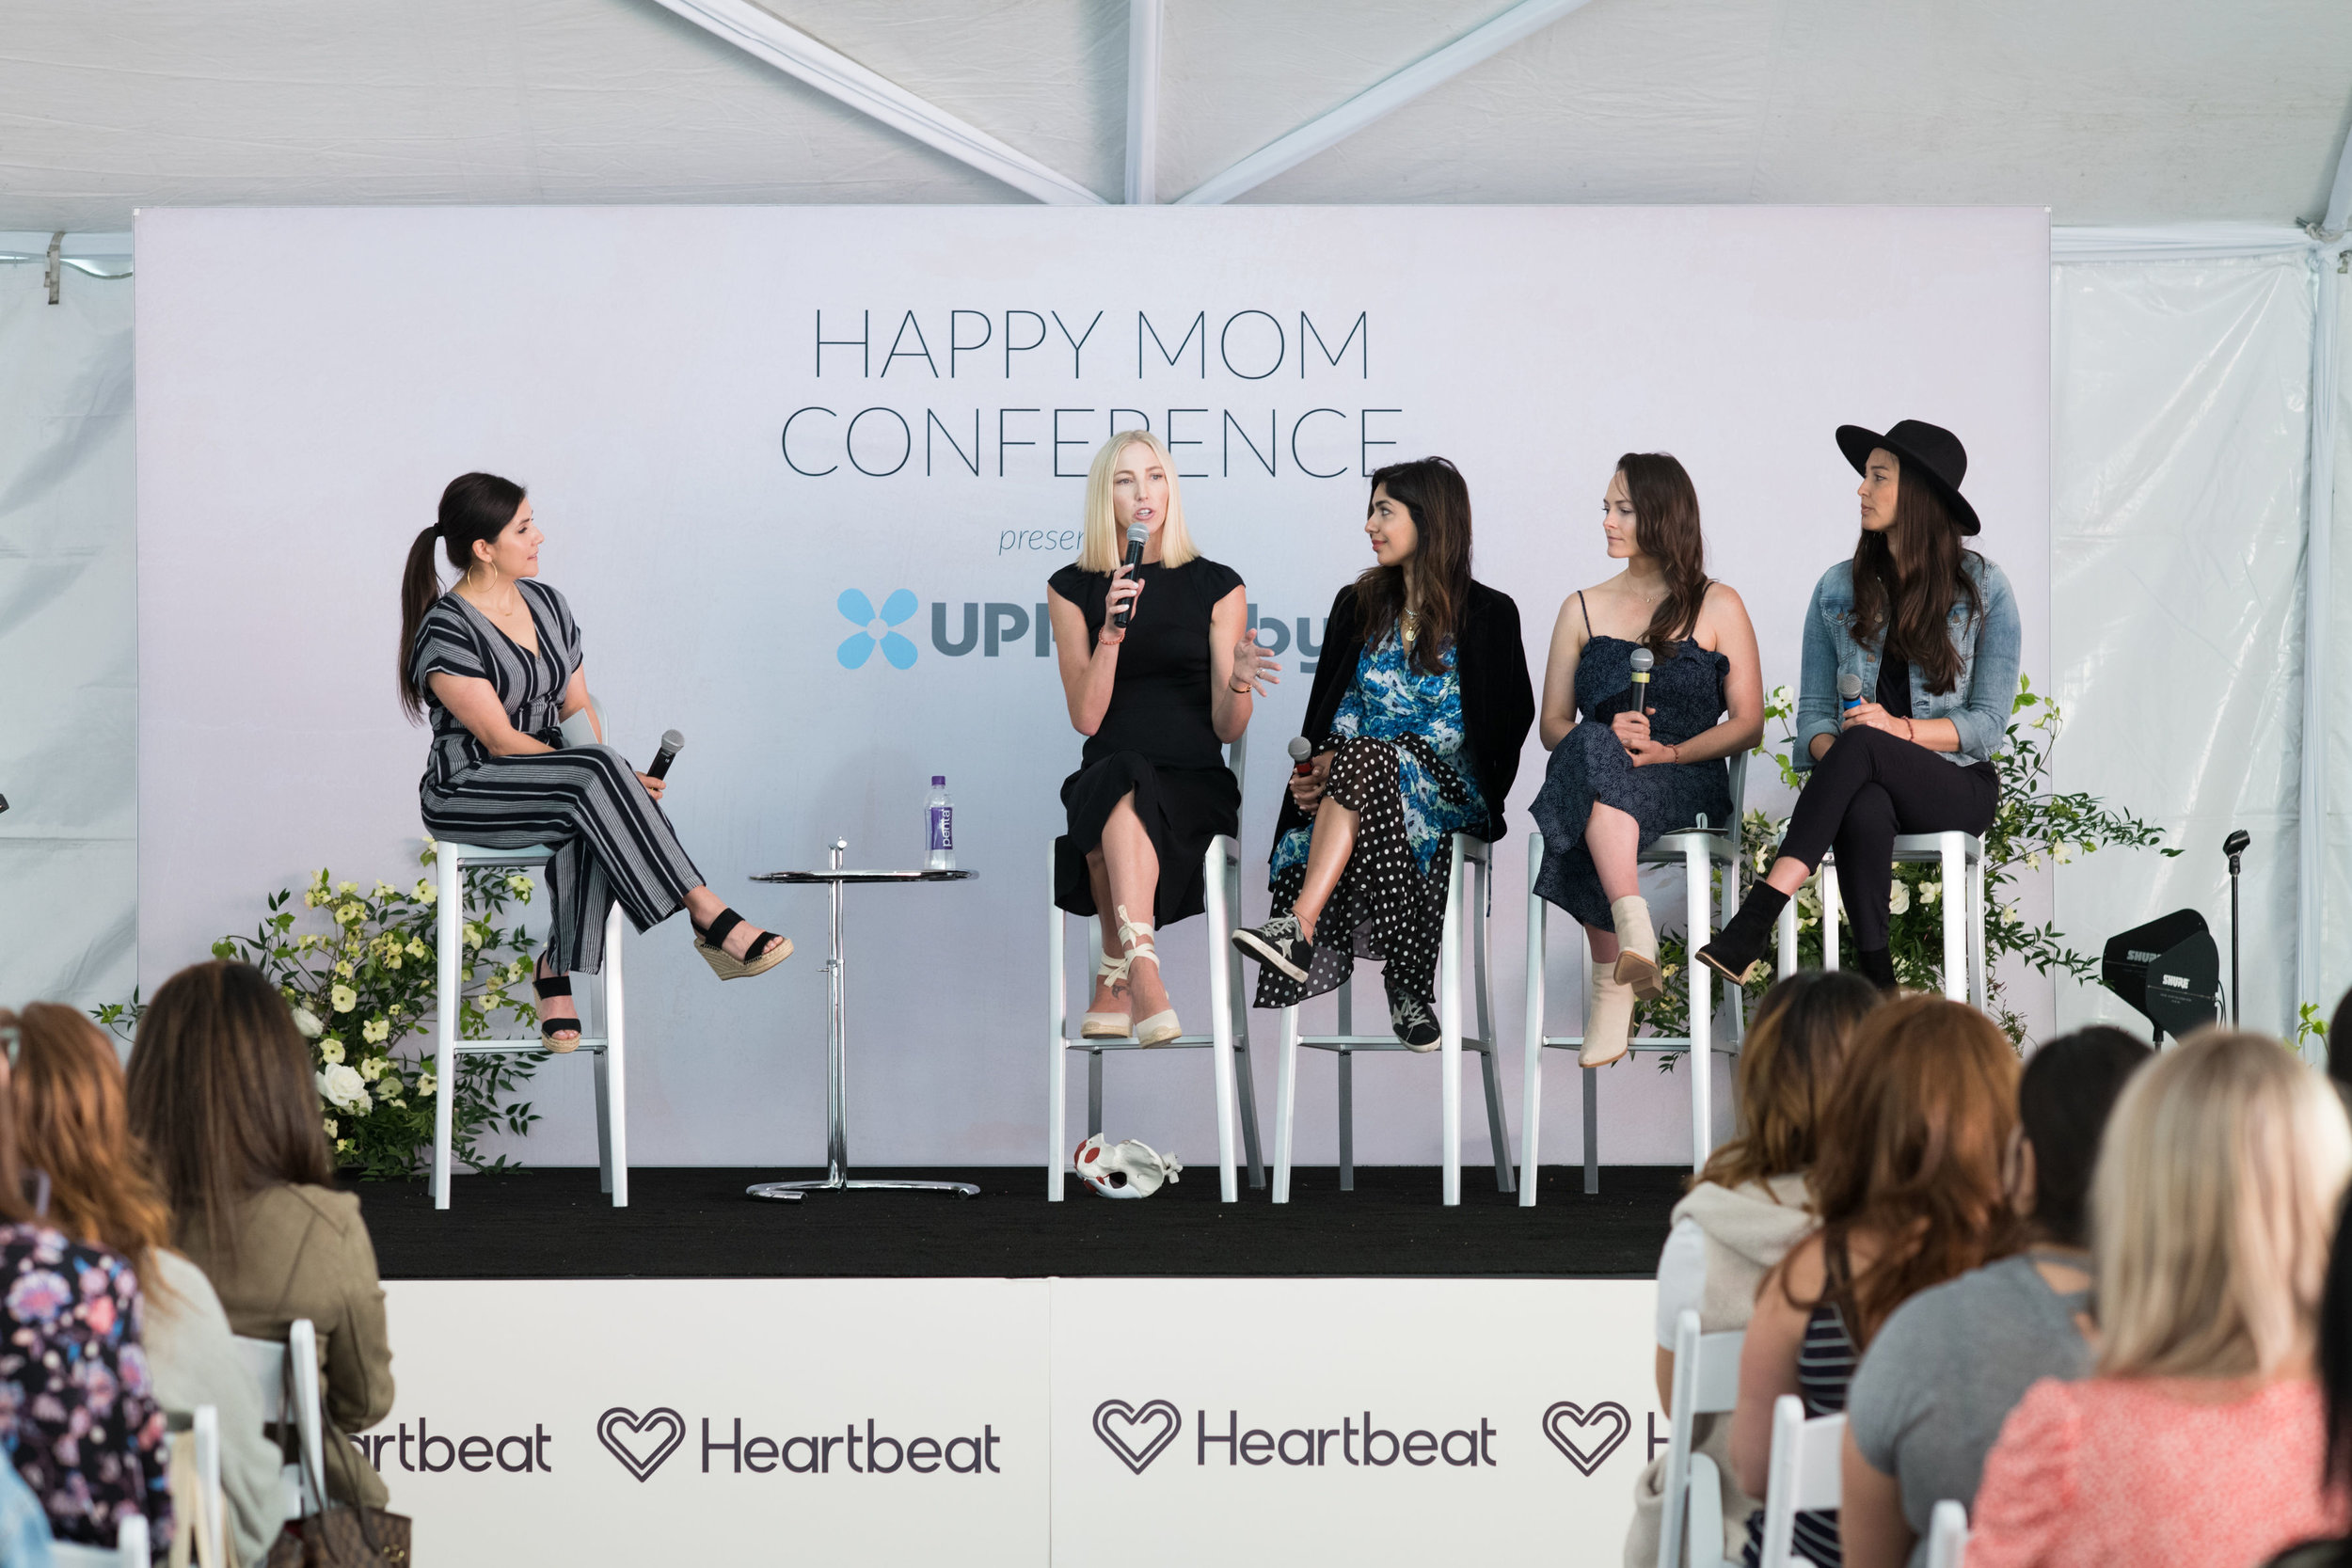 EL1_4682-Elaine-Lee-Photography-Happy-Mom-Conference-2019.jpg